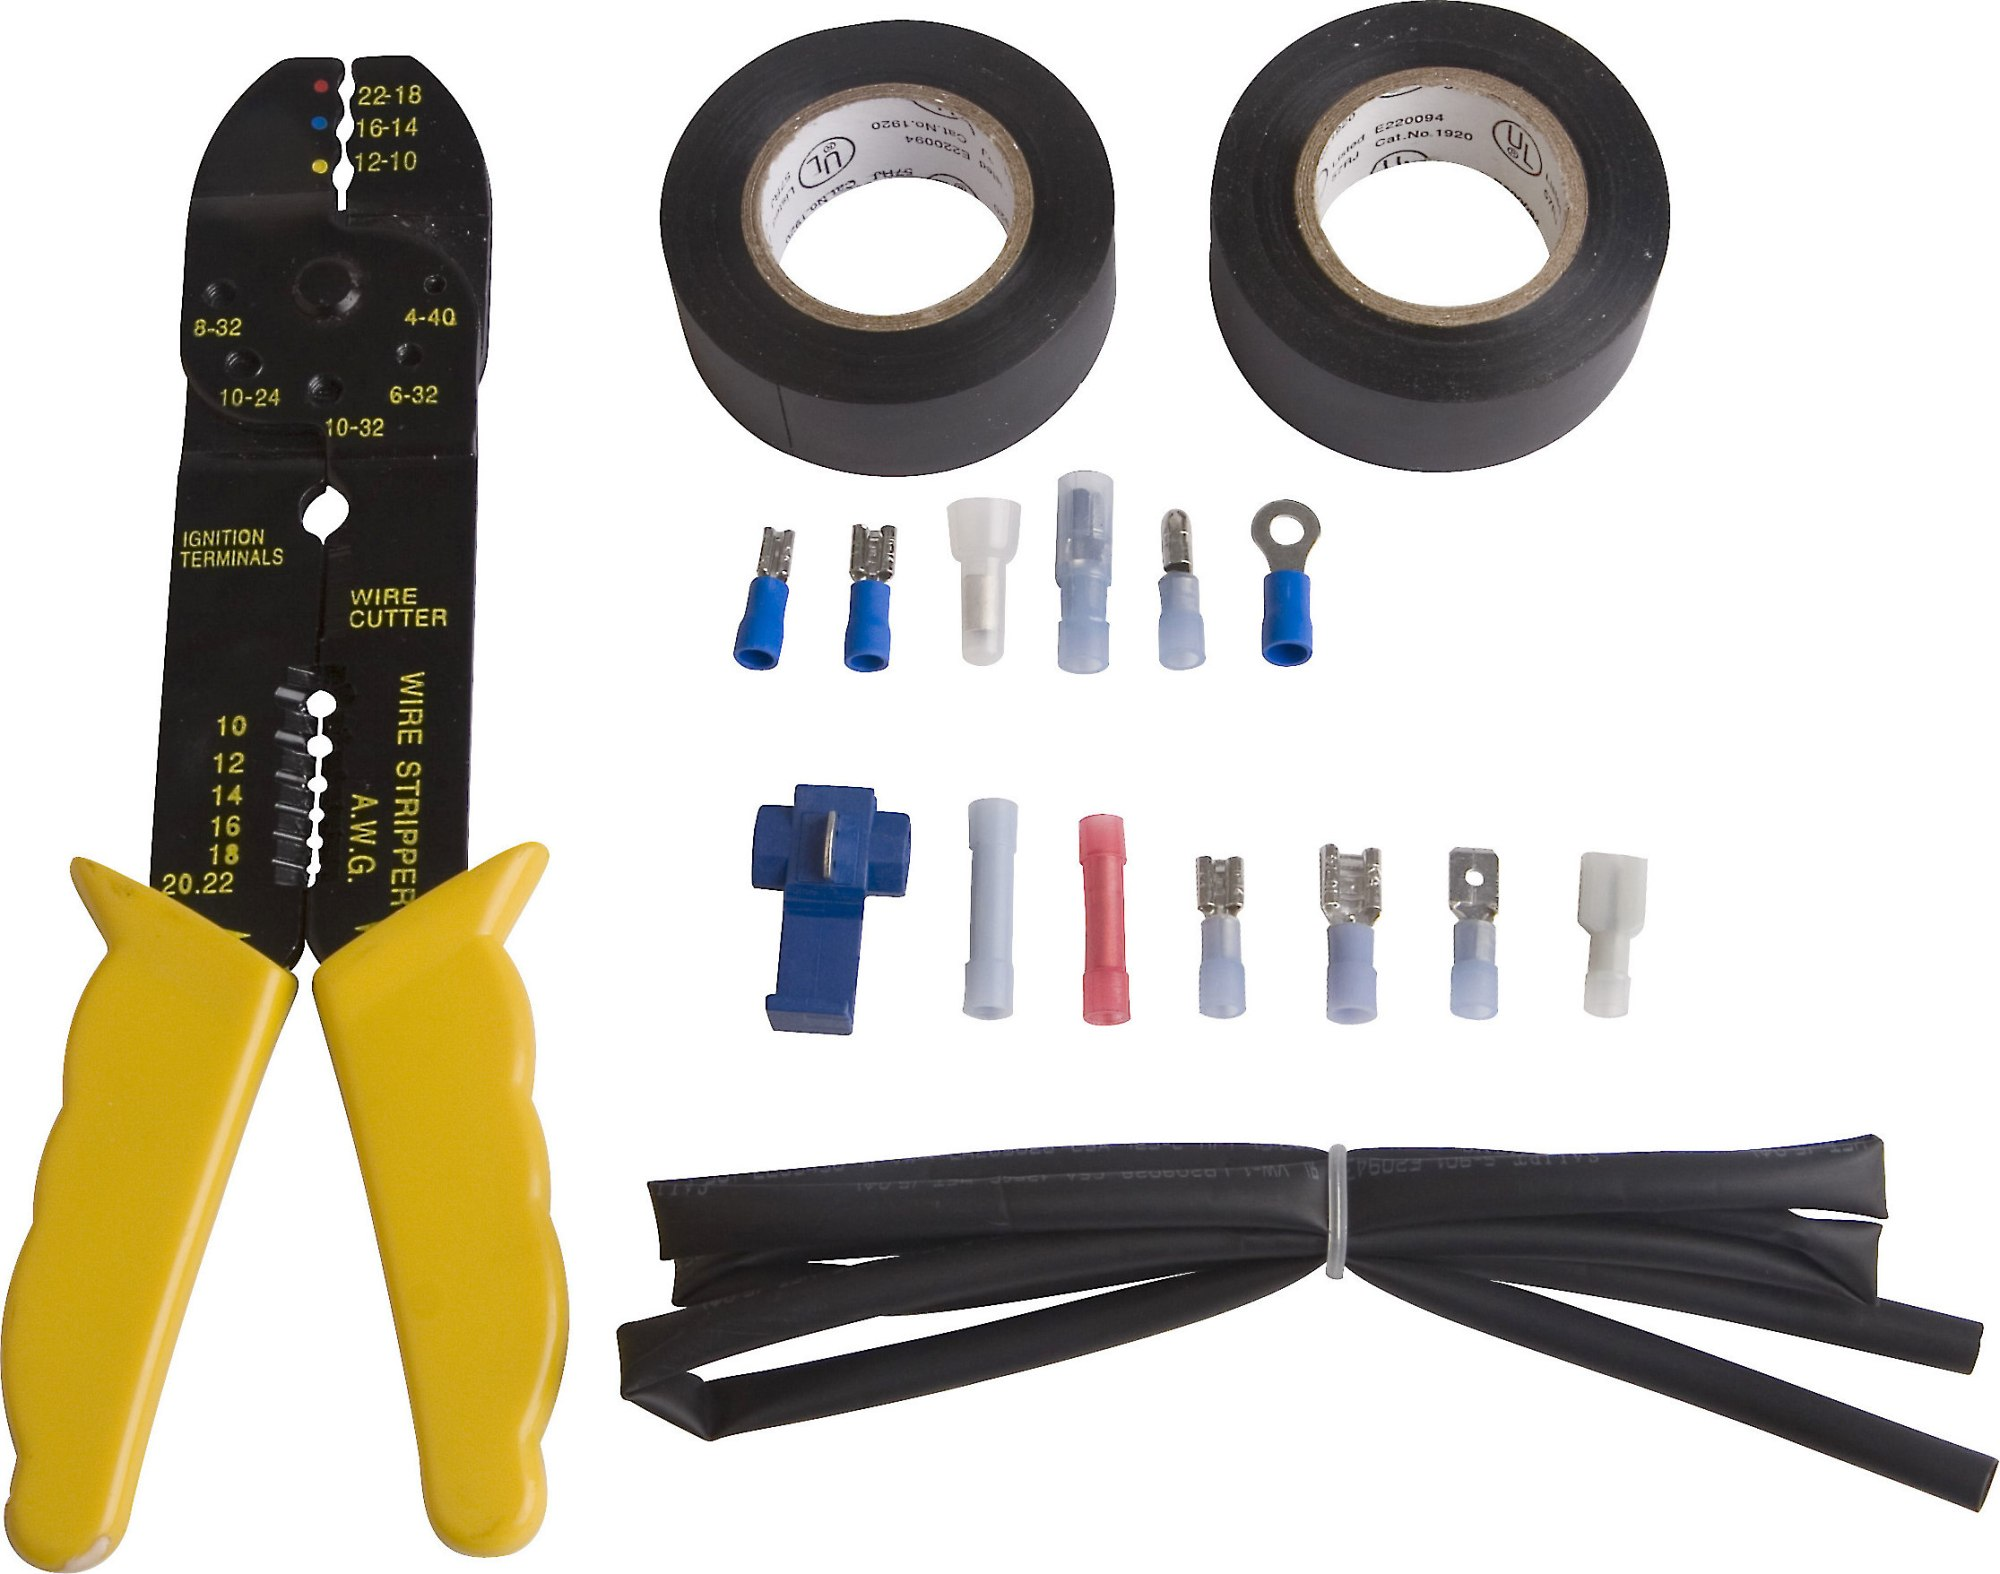 hight resolution of metra crimp tool and connectors package contains crimp tool and over 150 pieces at crutchfield